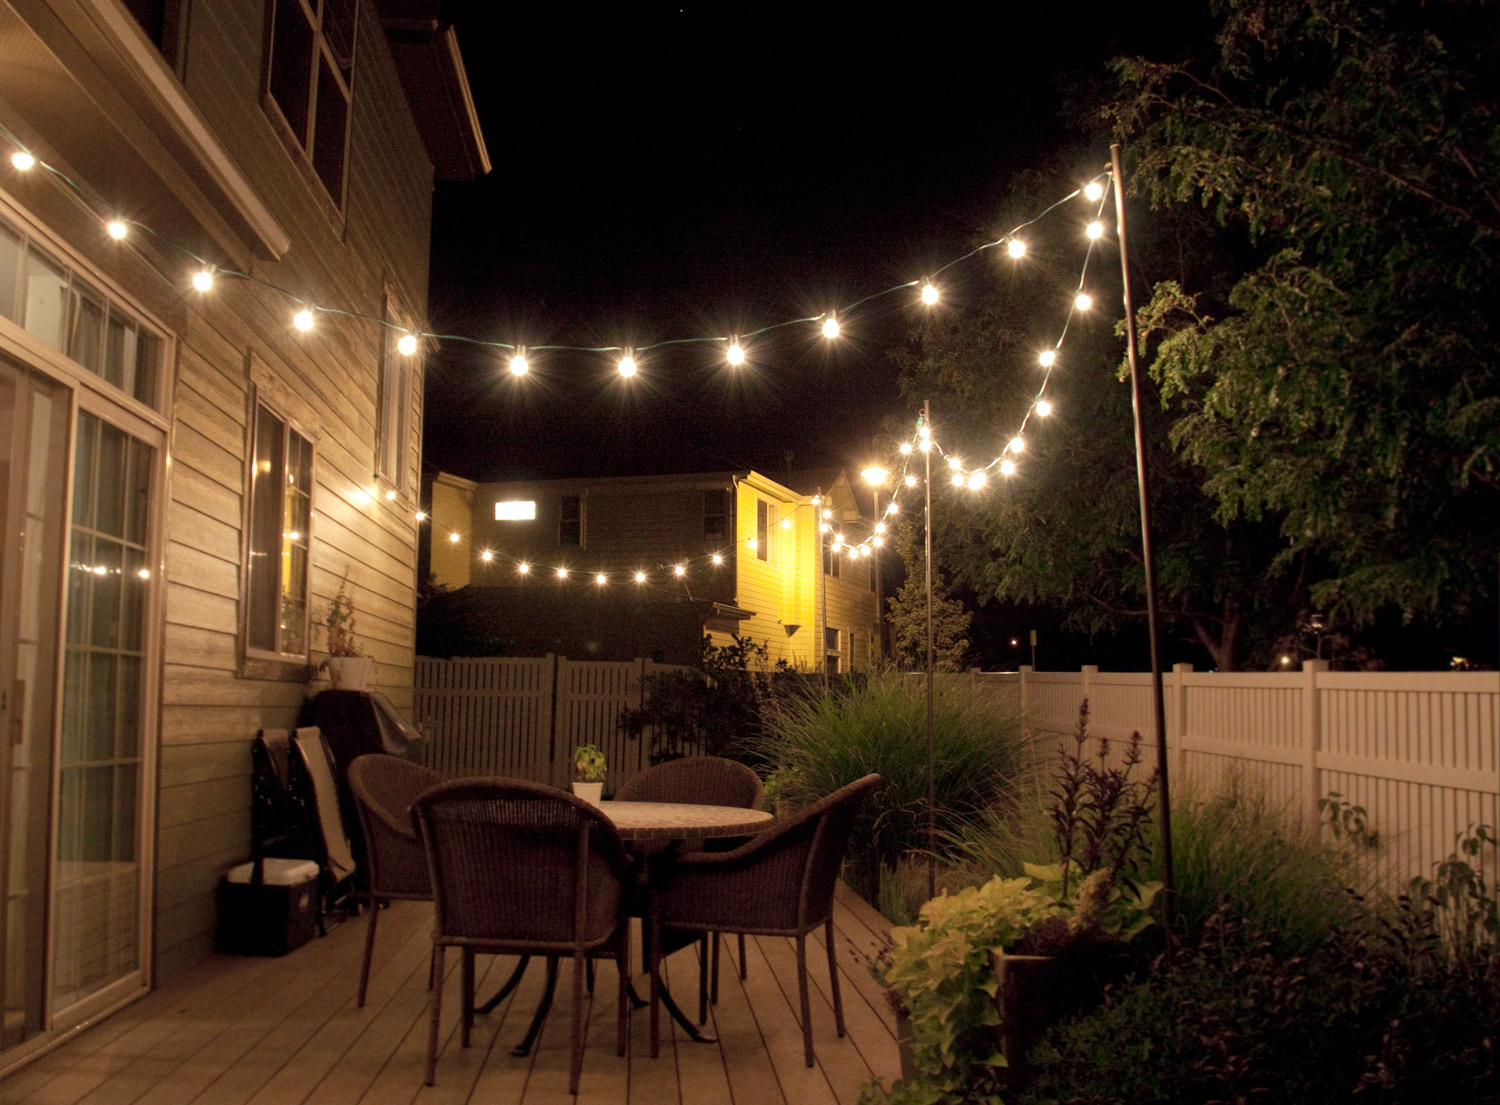 diy garden string lights. {diy}: outdoor string lights diy garden g